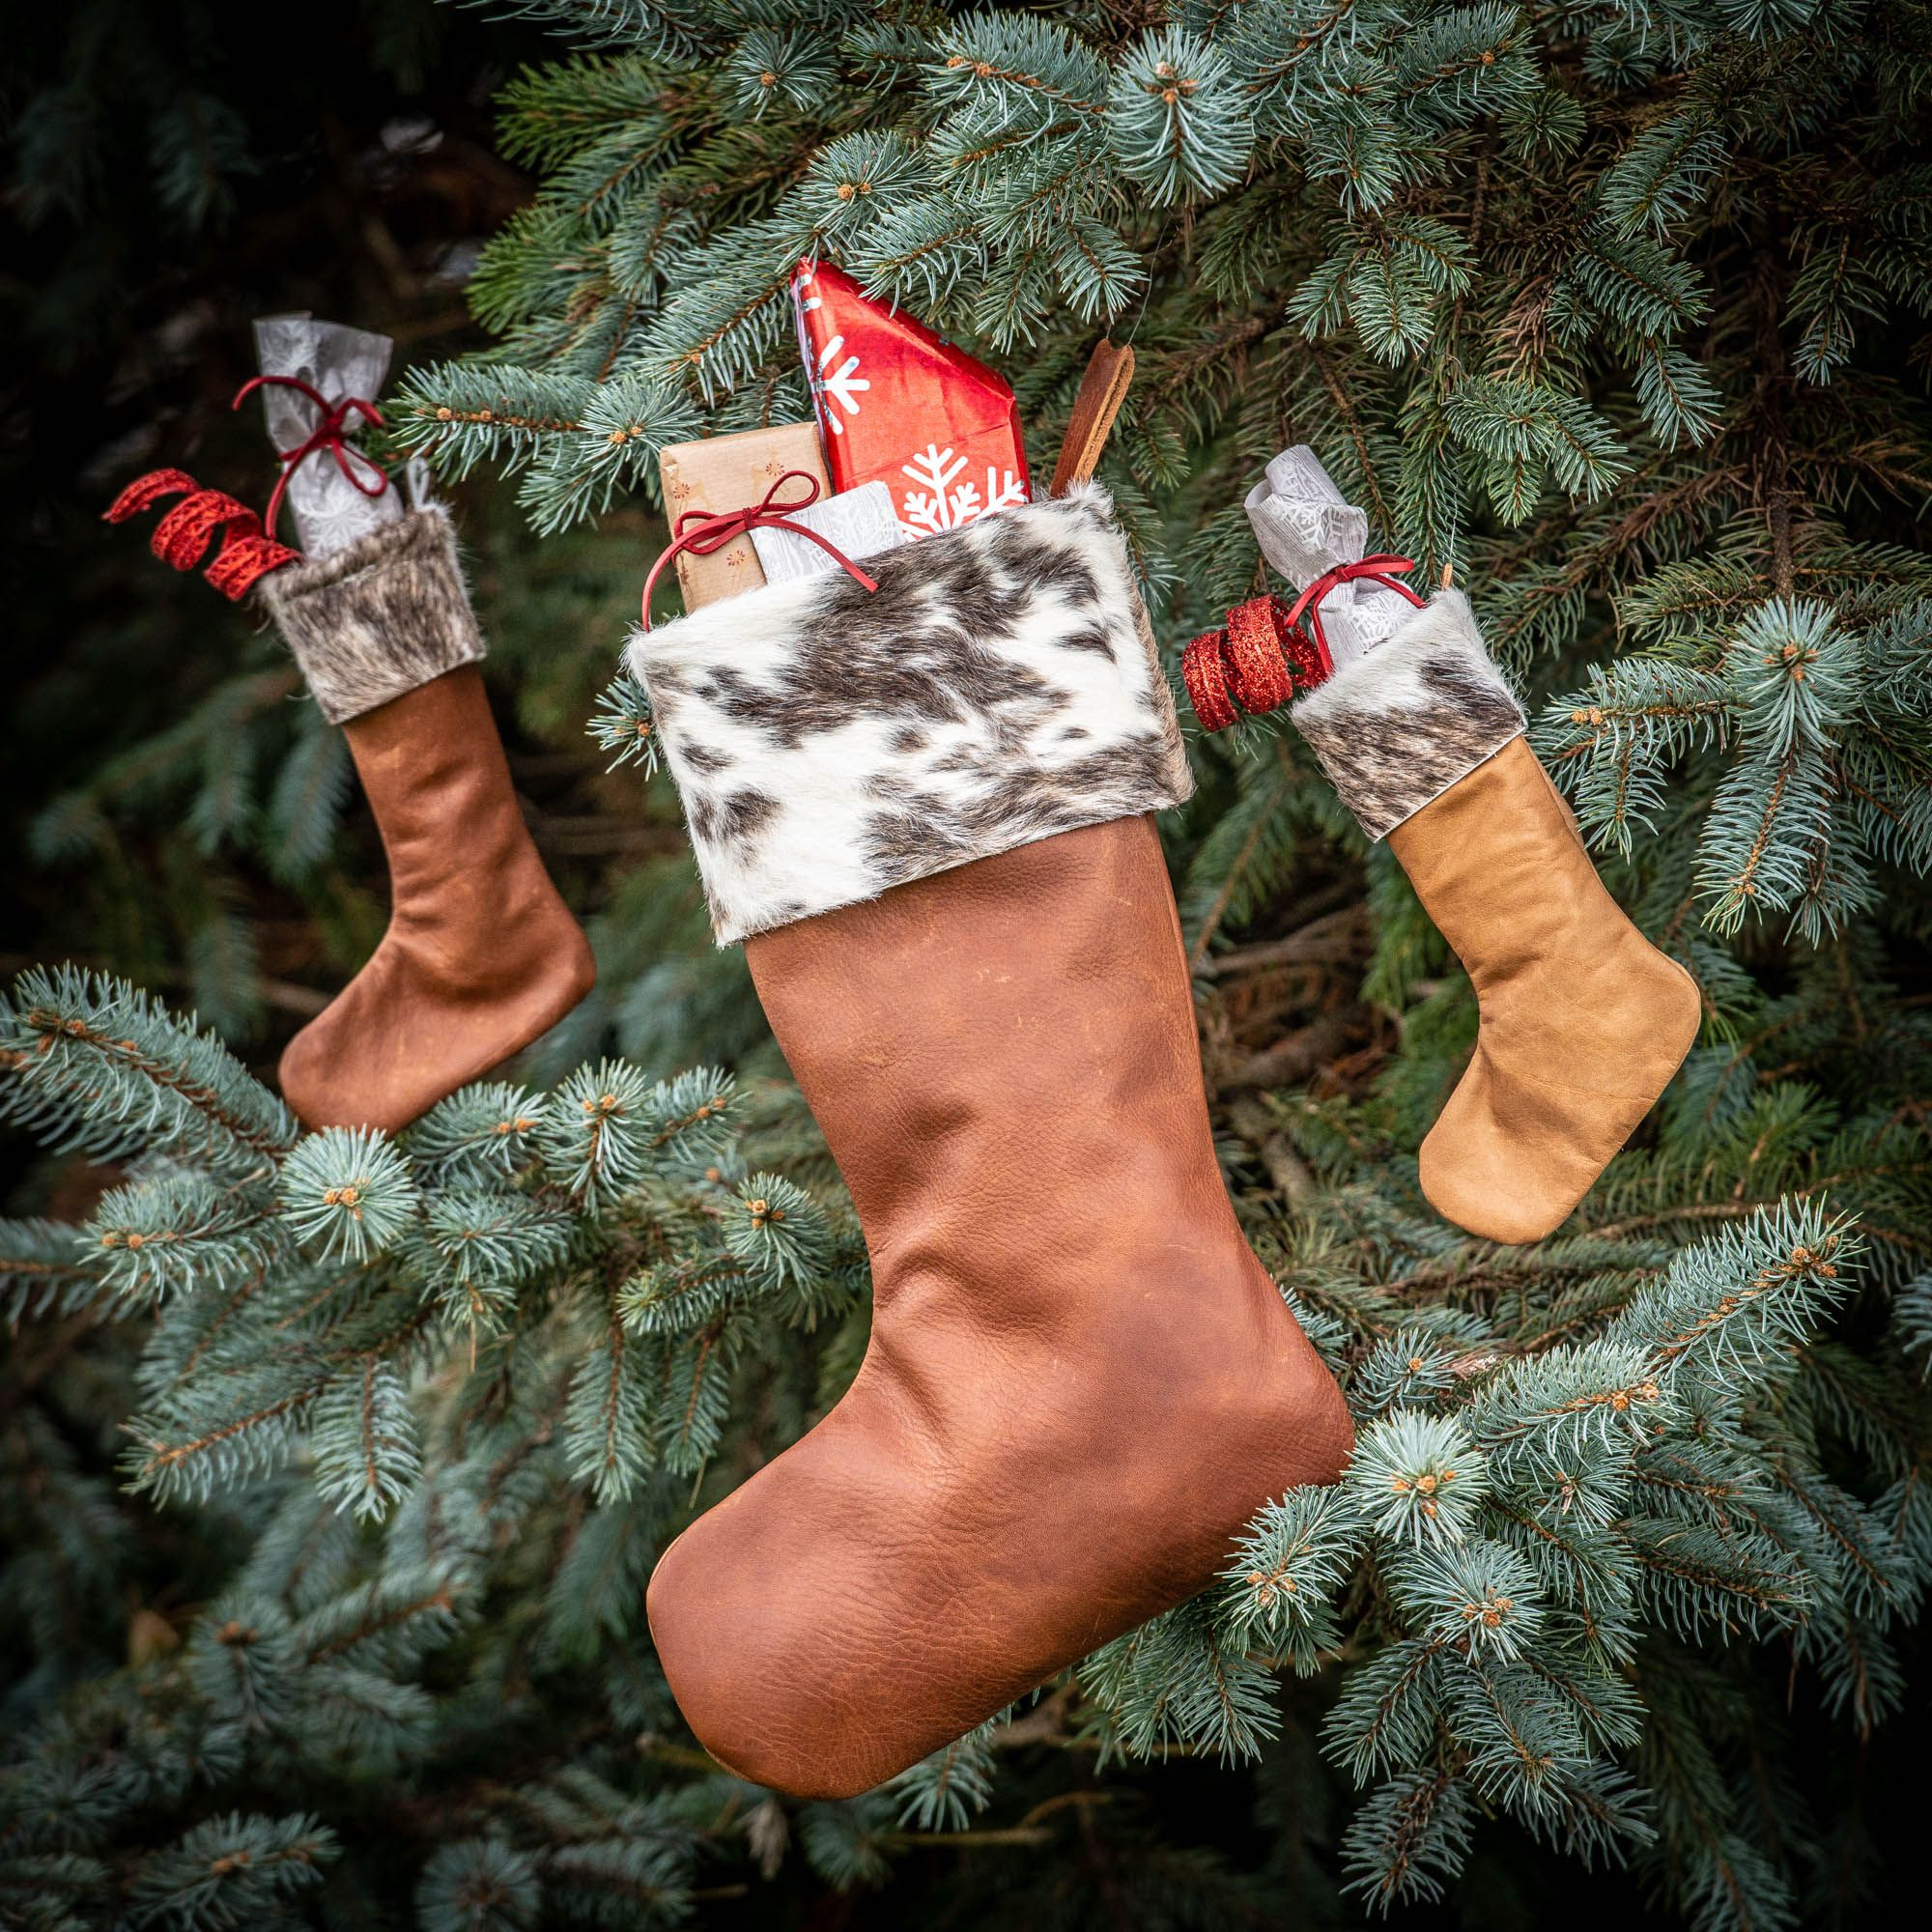 Making A Leather Stocking Weaver Leather Craft Supply Blog Christmas Stockings Diy Sewing Leather Leather Working Patterns